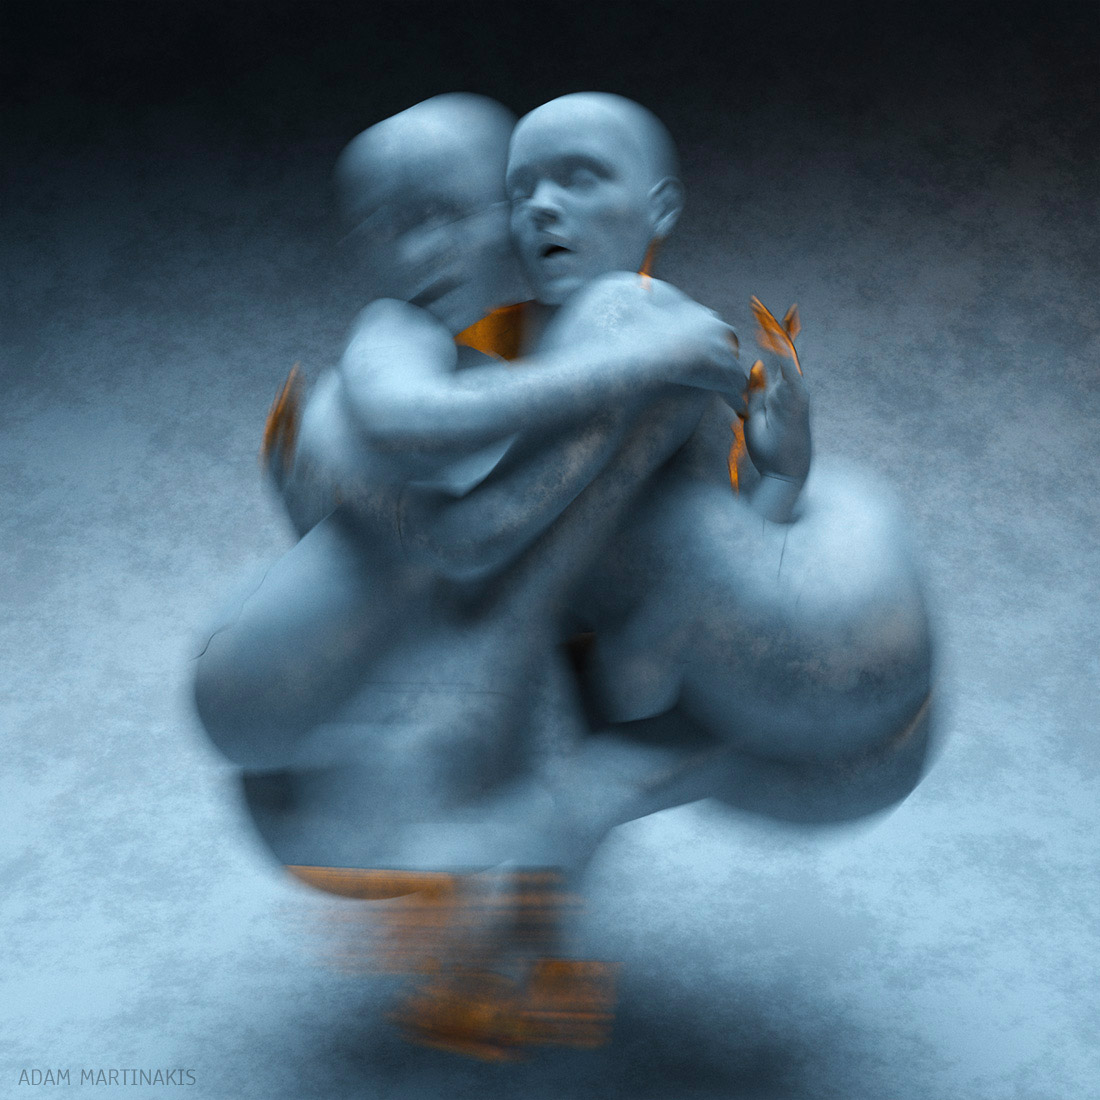 3D Illustrations by Adam Martinakis